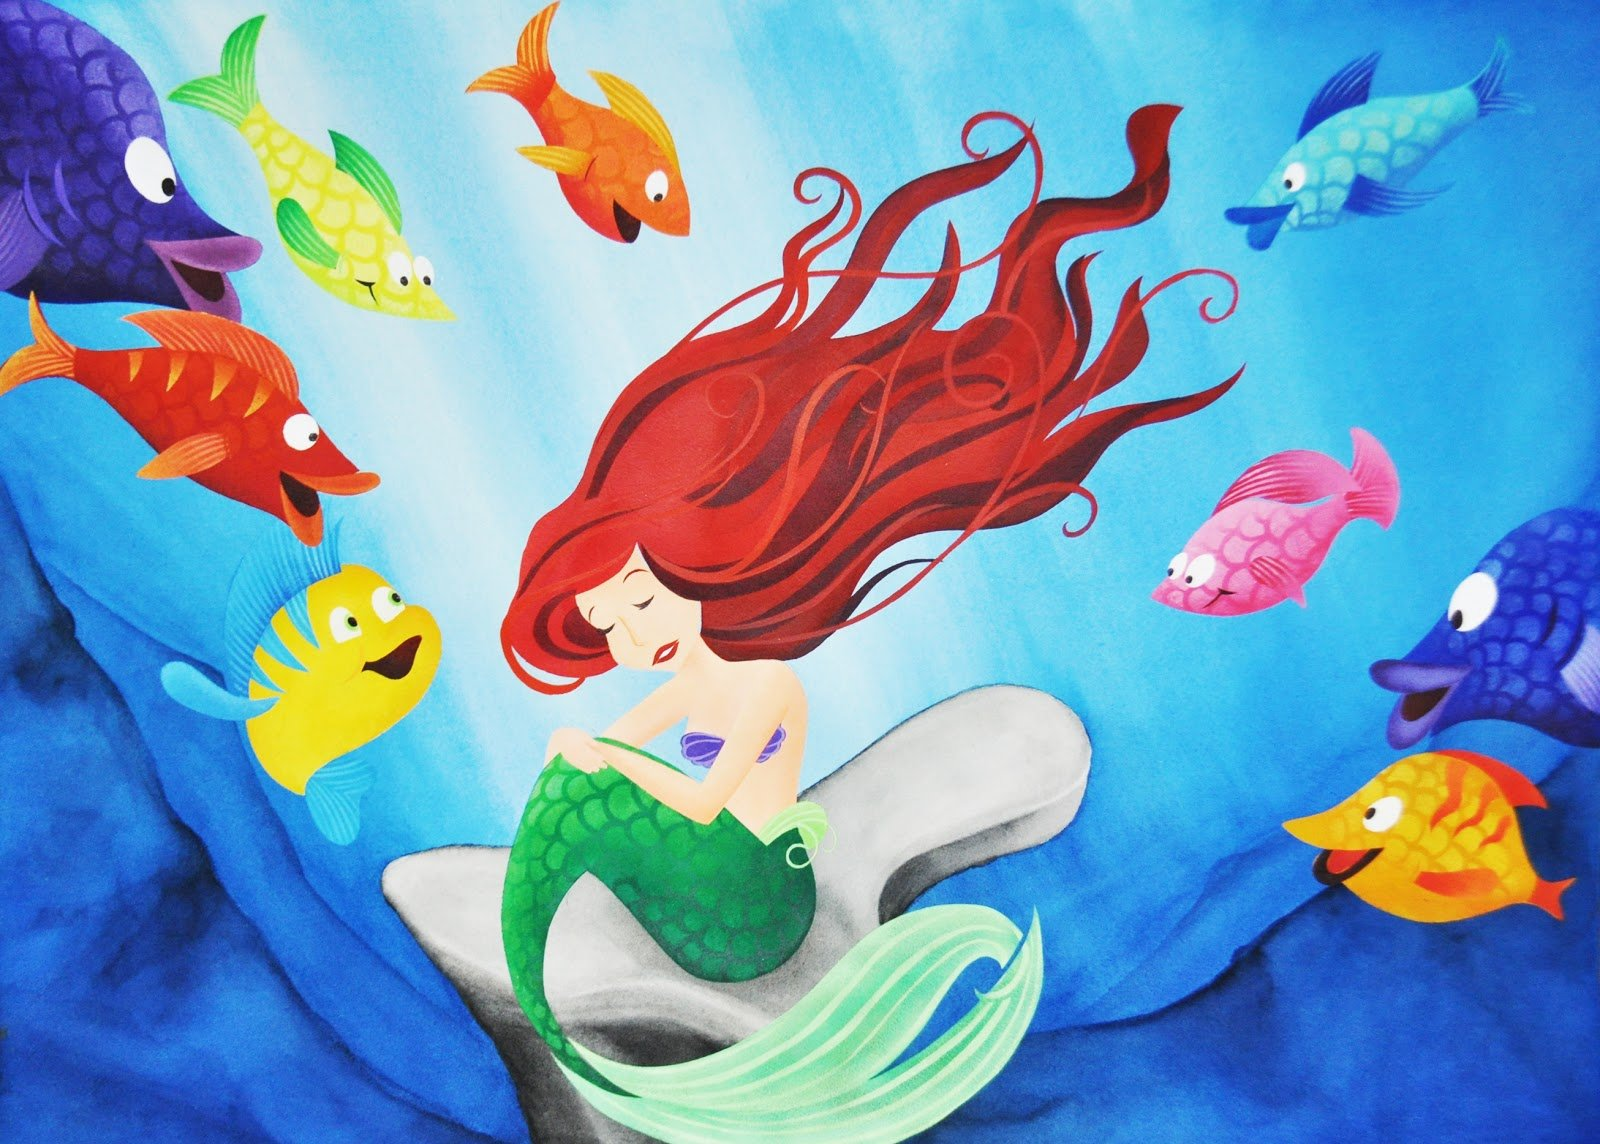 Cute ariel wallpaper wallpapersafari for The little mermaid fish